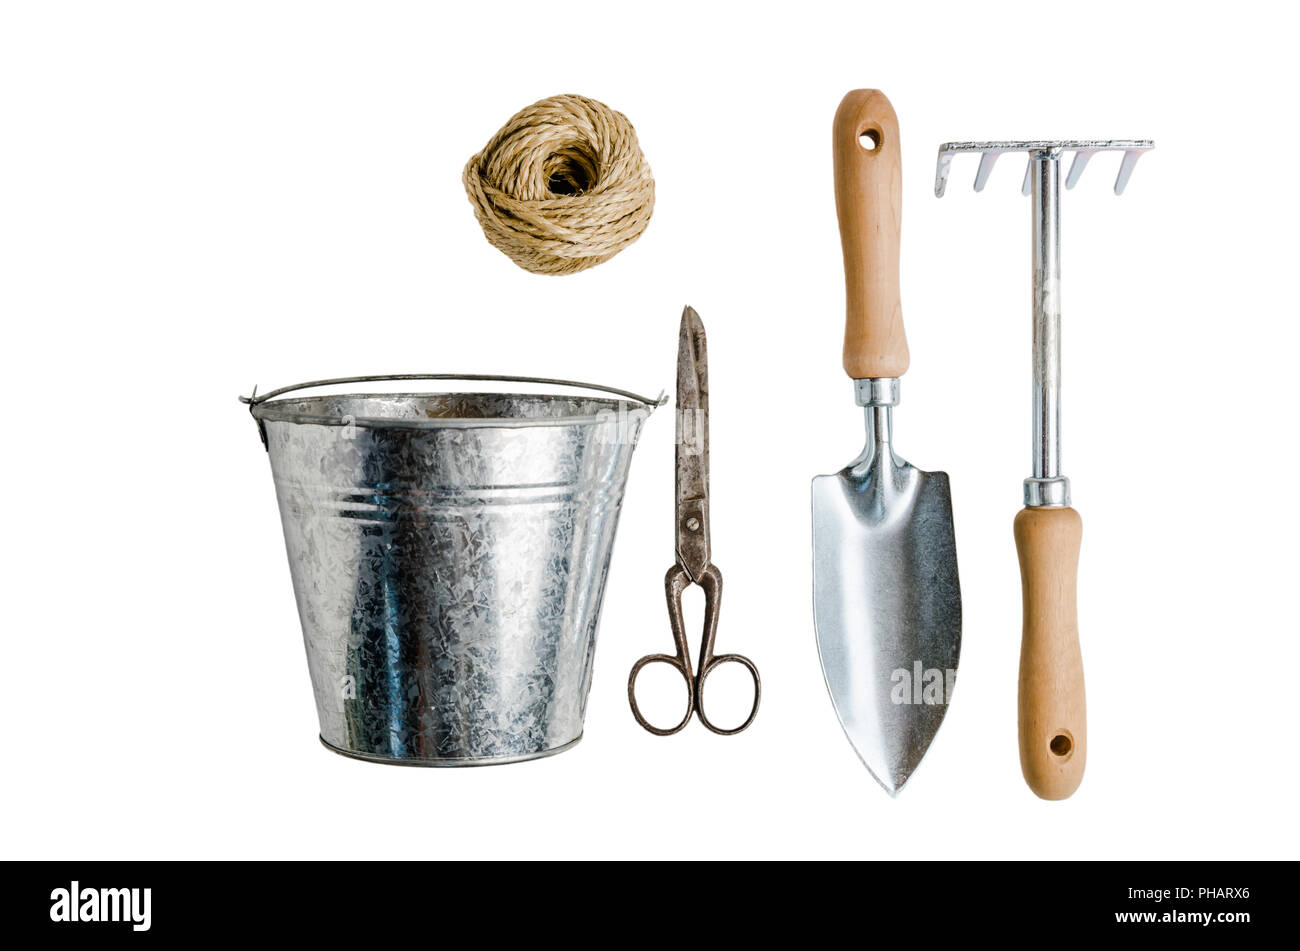 Garden Tools For Planting Isolated On White Stock Photo